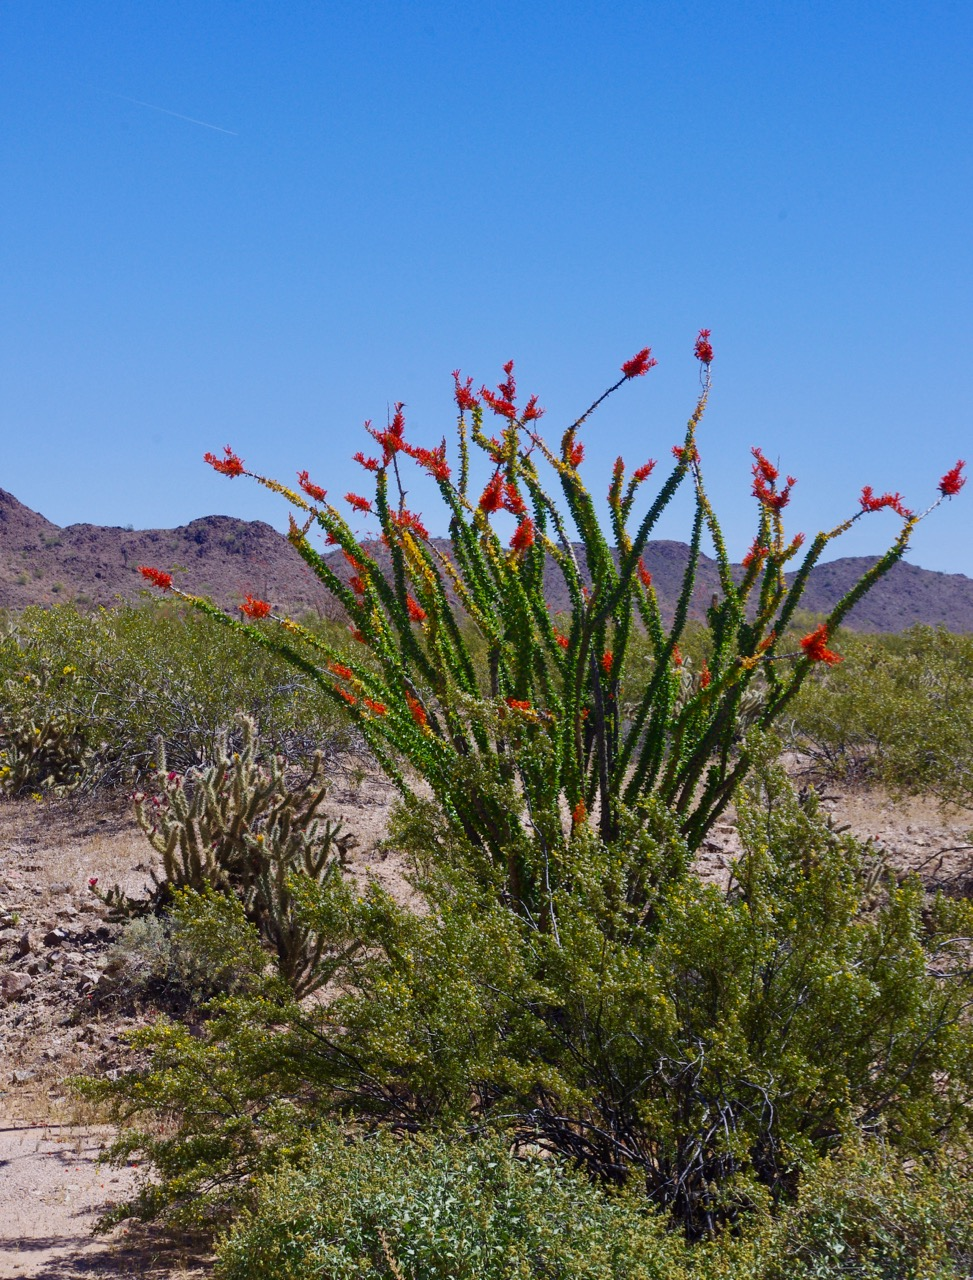 The ocotillo were blooming, too (pronounced 'ocotiyo')